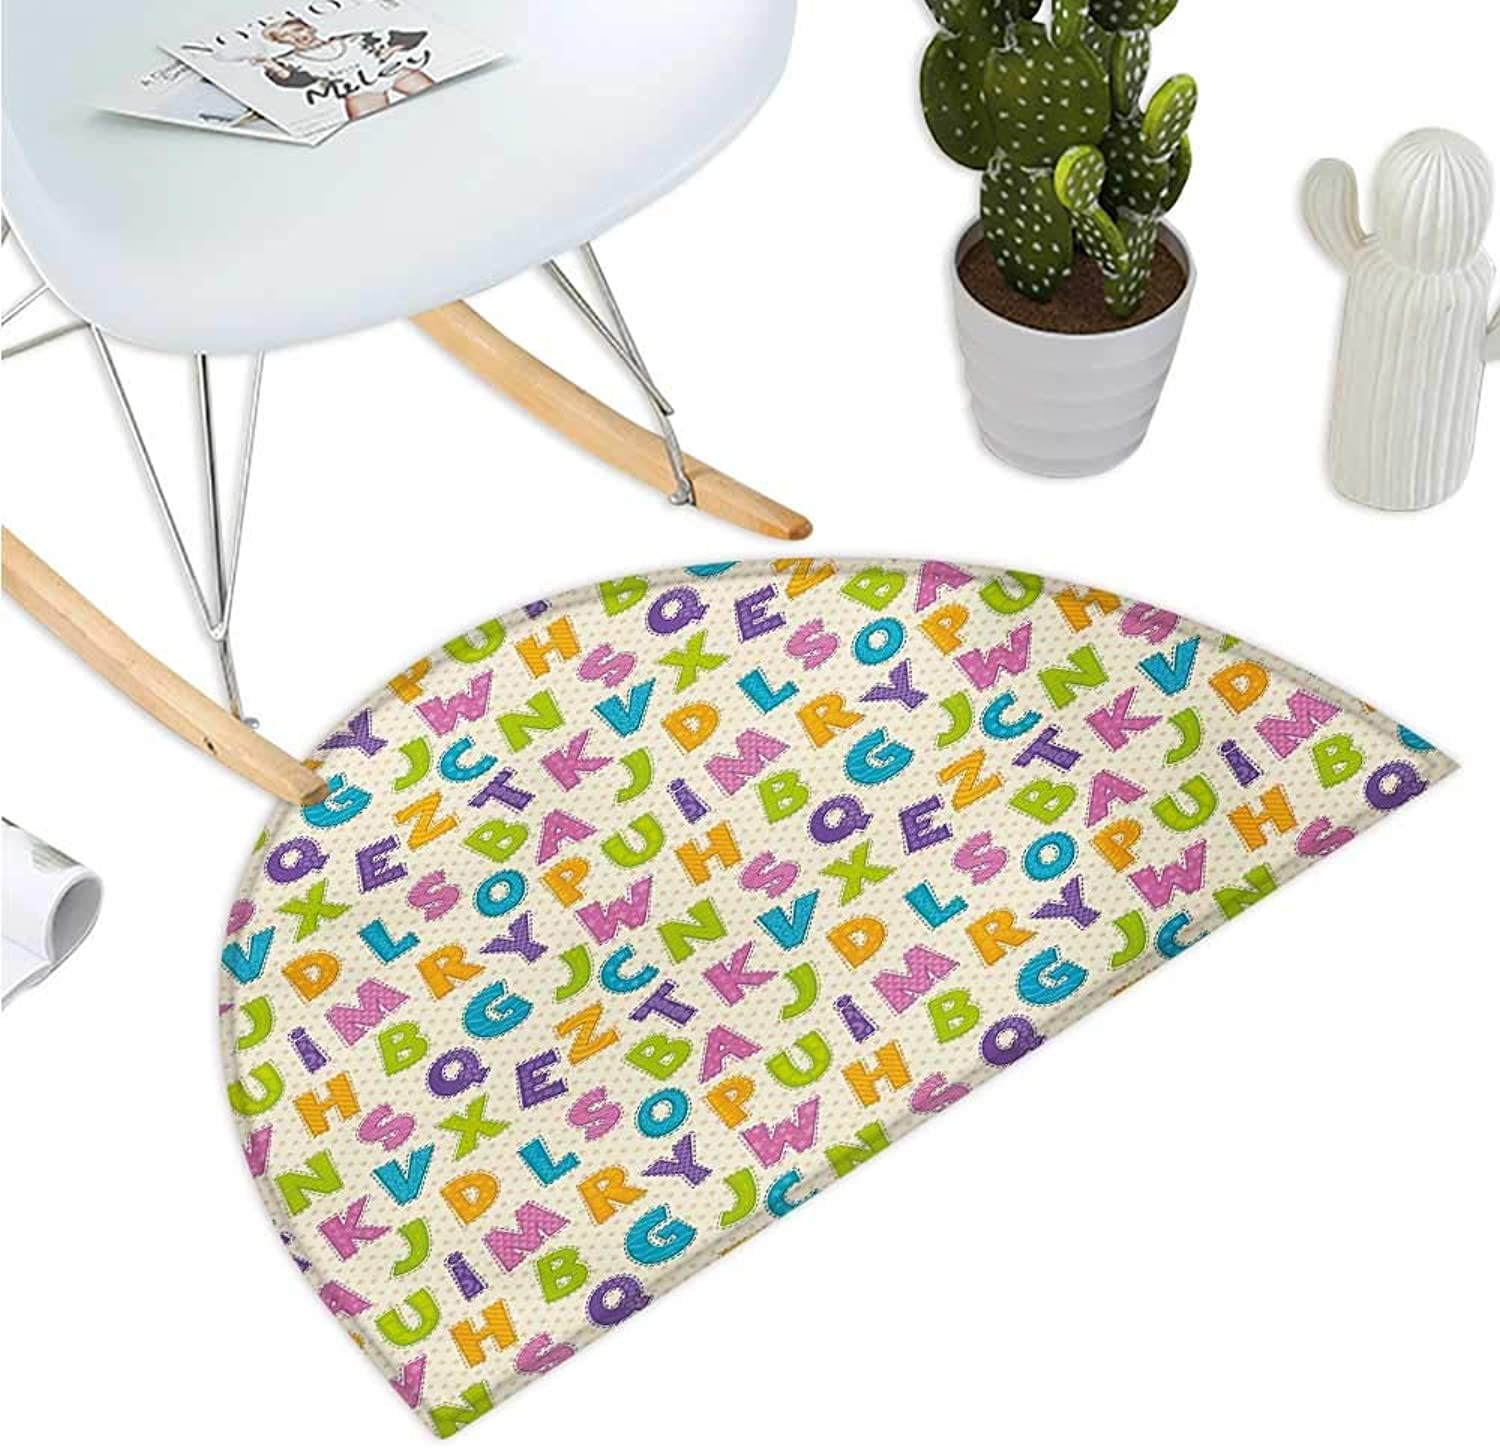 Kids Semicircular Cushion Cute Funny Letters in Lively colors Cartoon Style ABC Alphabet on Polka Dots Backdrop Entry Door Mat H 47.2  xD 70.8  Multicolor